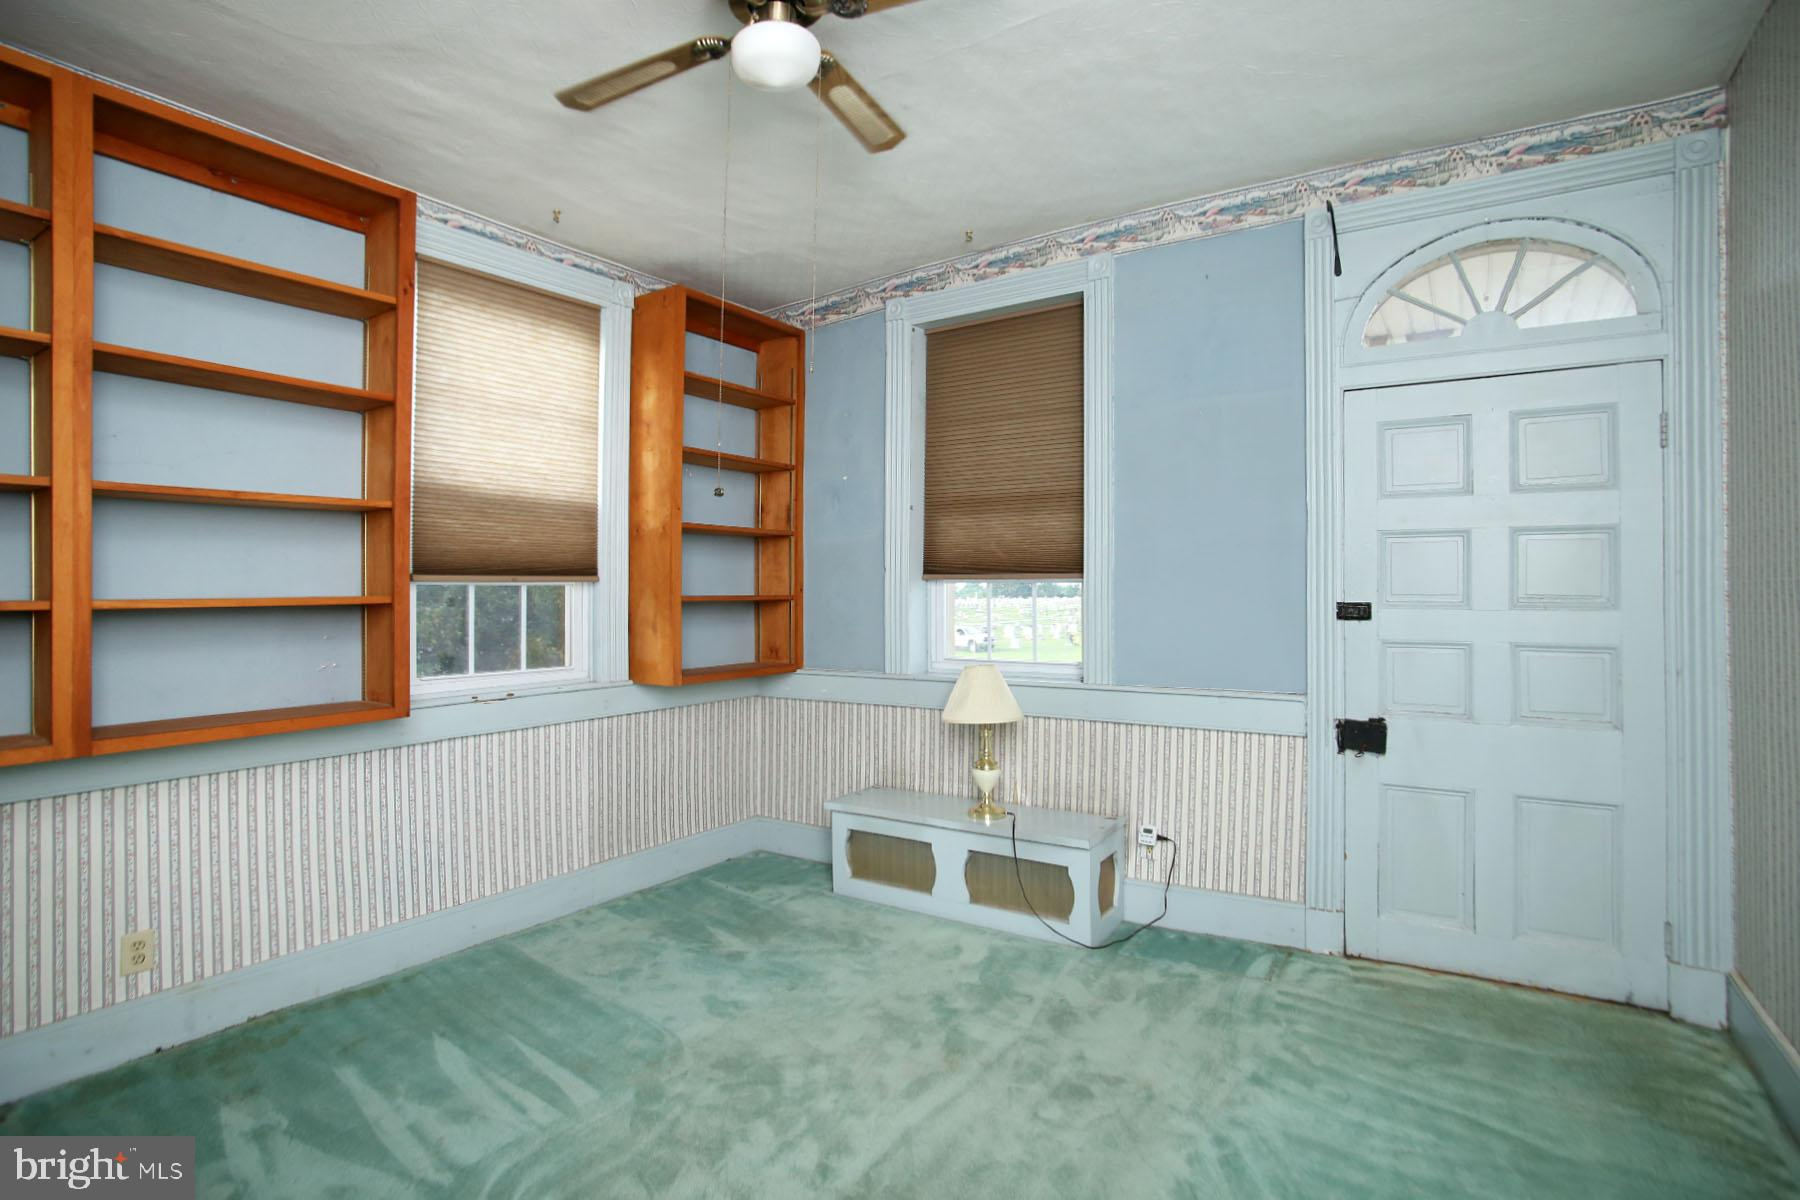 Built in Bookcases in Living Room